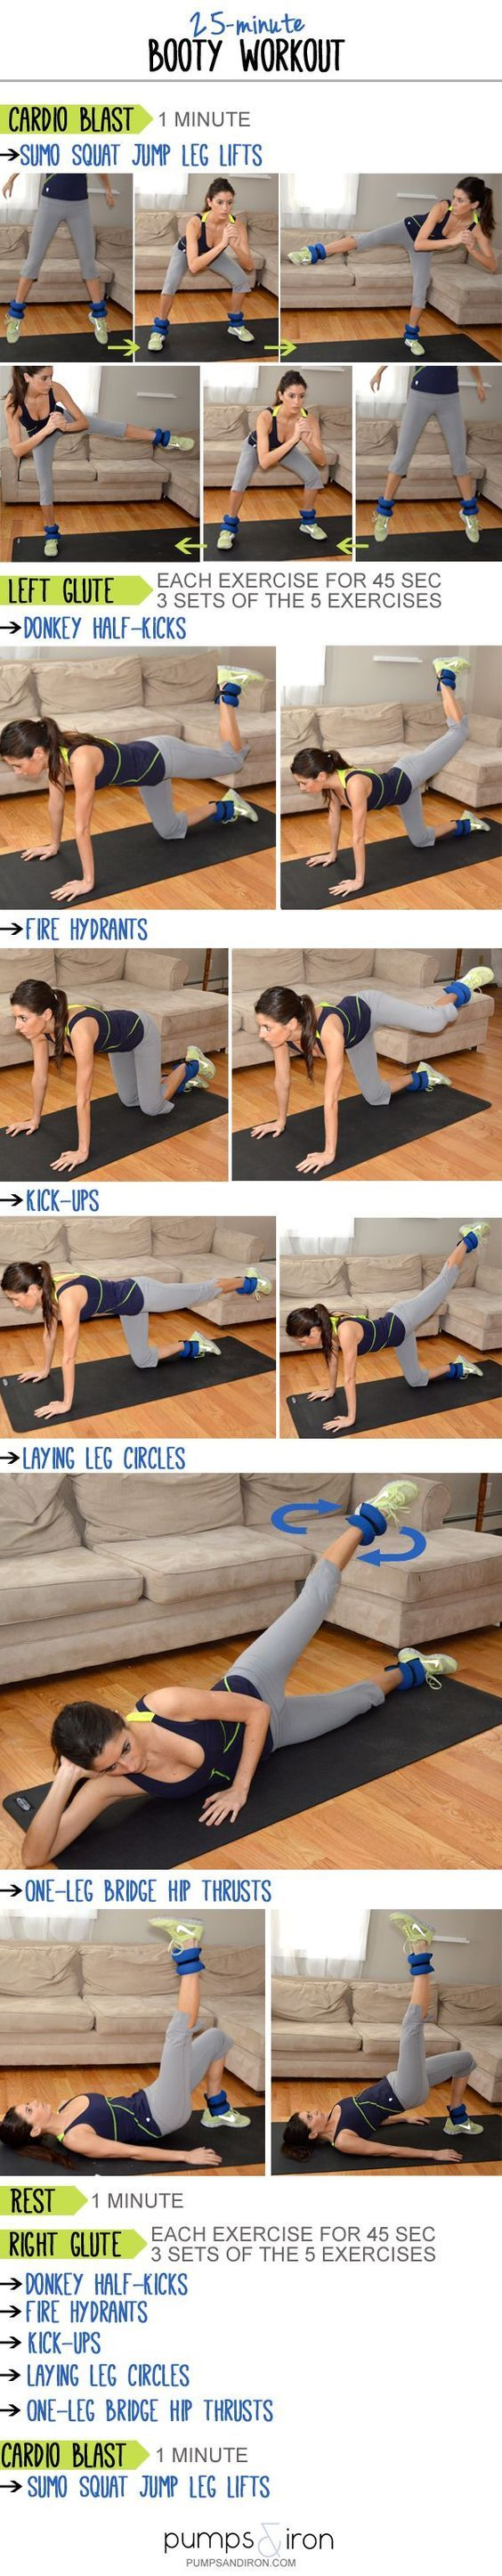 25-Minute Booty Workout -- strap on ankle weights for an added burn!